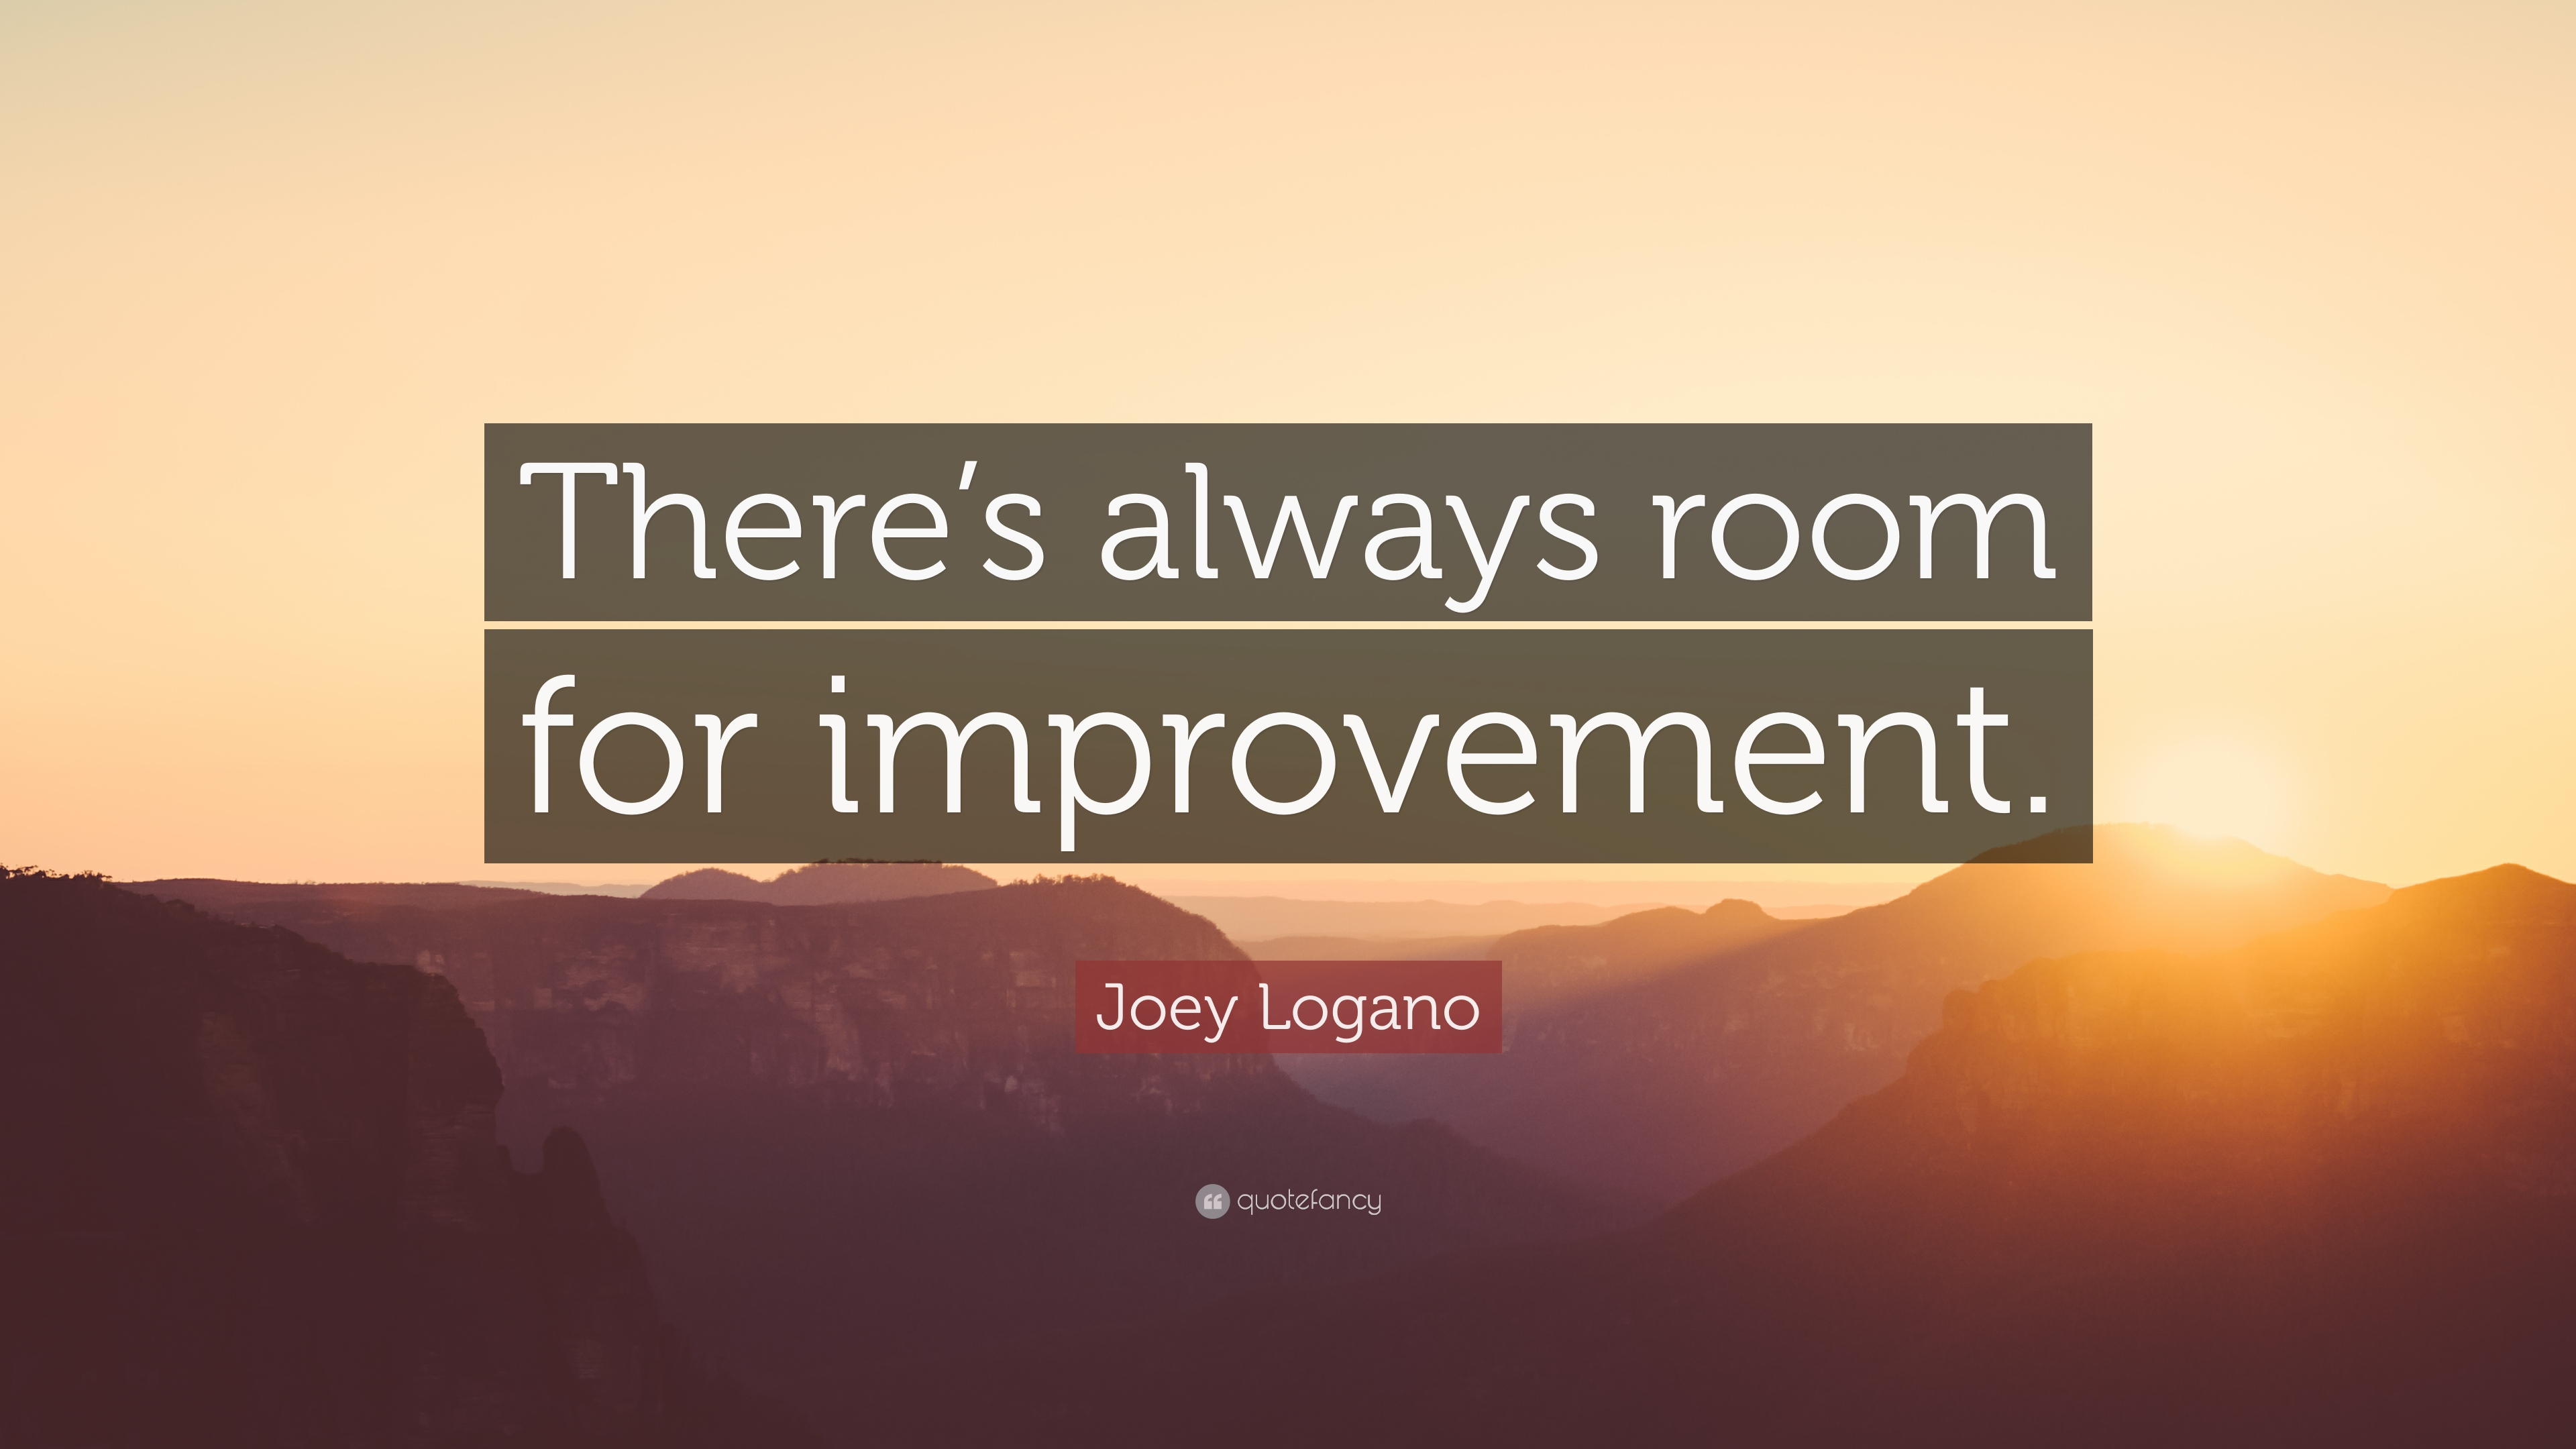 Self Improvement Quotes Self Improvement Quotes 40 Wallpapers  Quotefancy